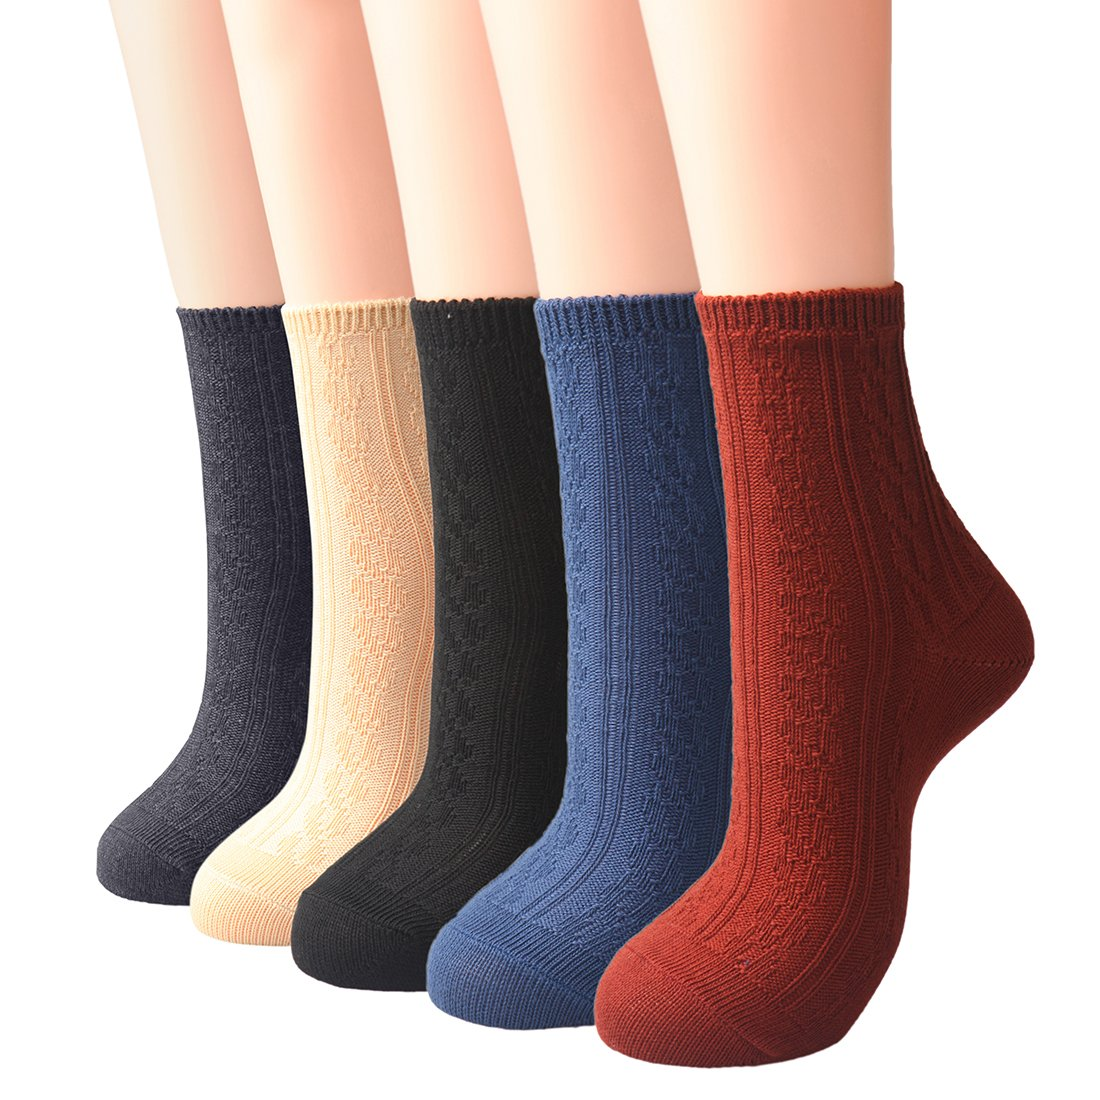 Neeseelily 5 Pack Women's Warm Winter Cotton Ribbed Knit Casual Crew Socks (One Size, multicolored)